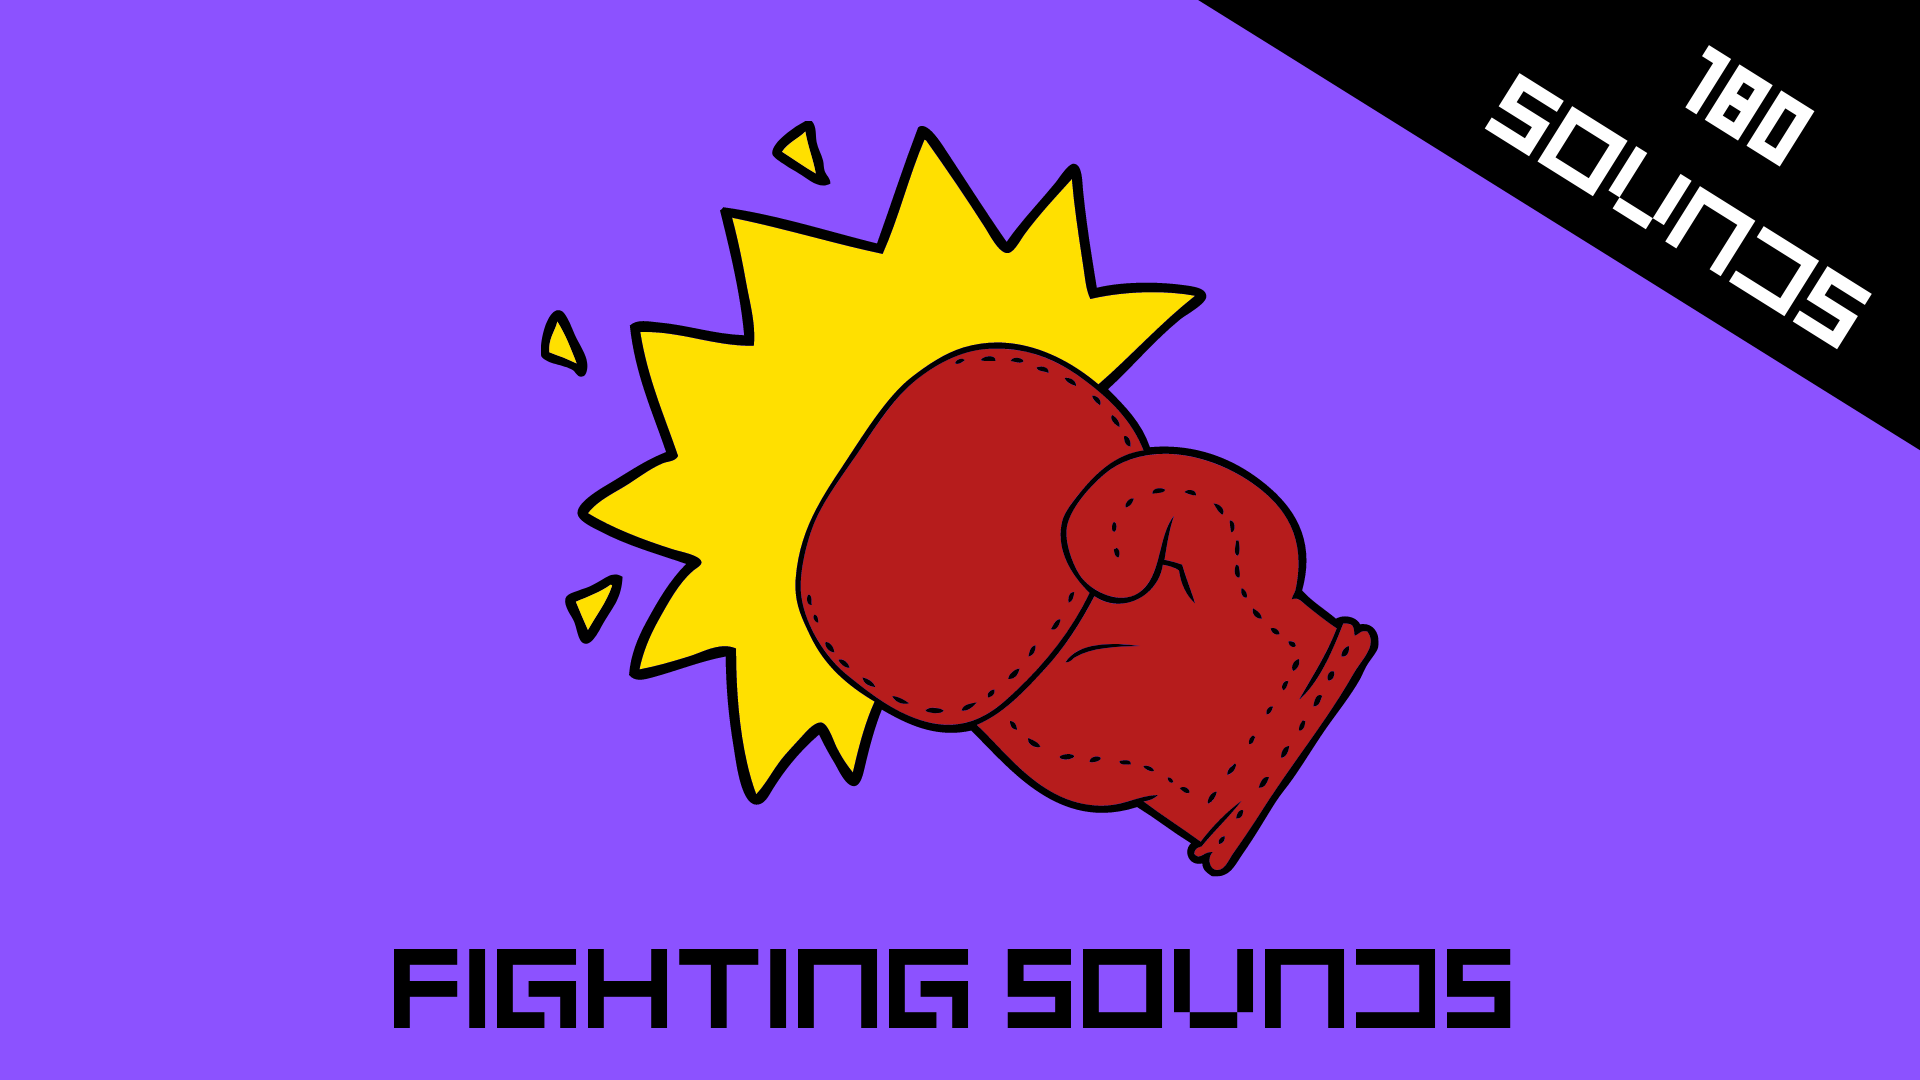 Punch & Fighting Sounds Pro by Sidearm Studios in Sound